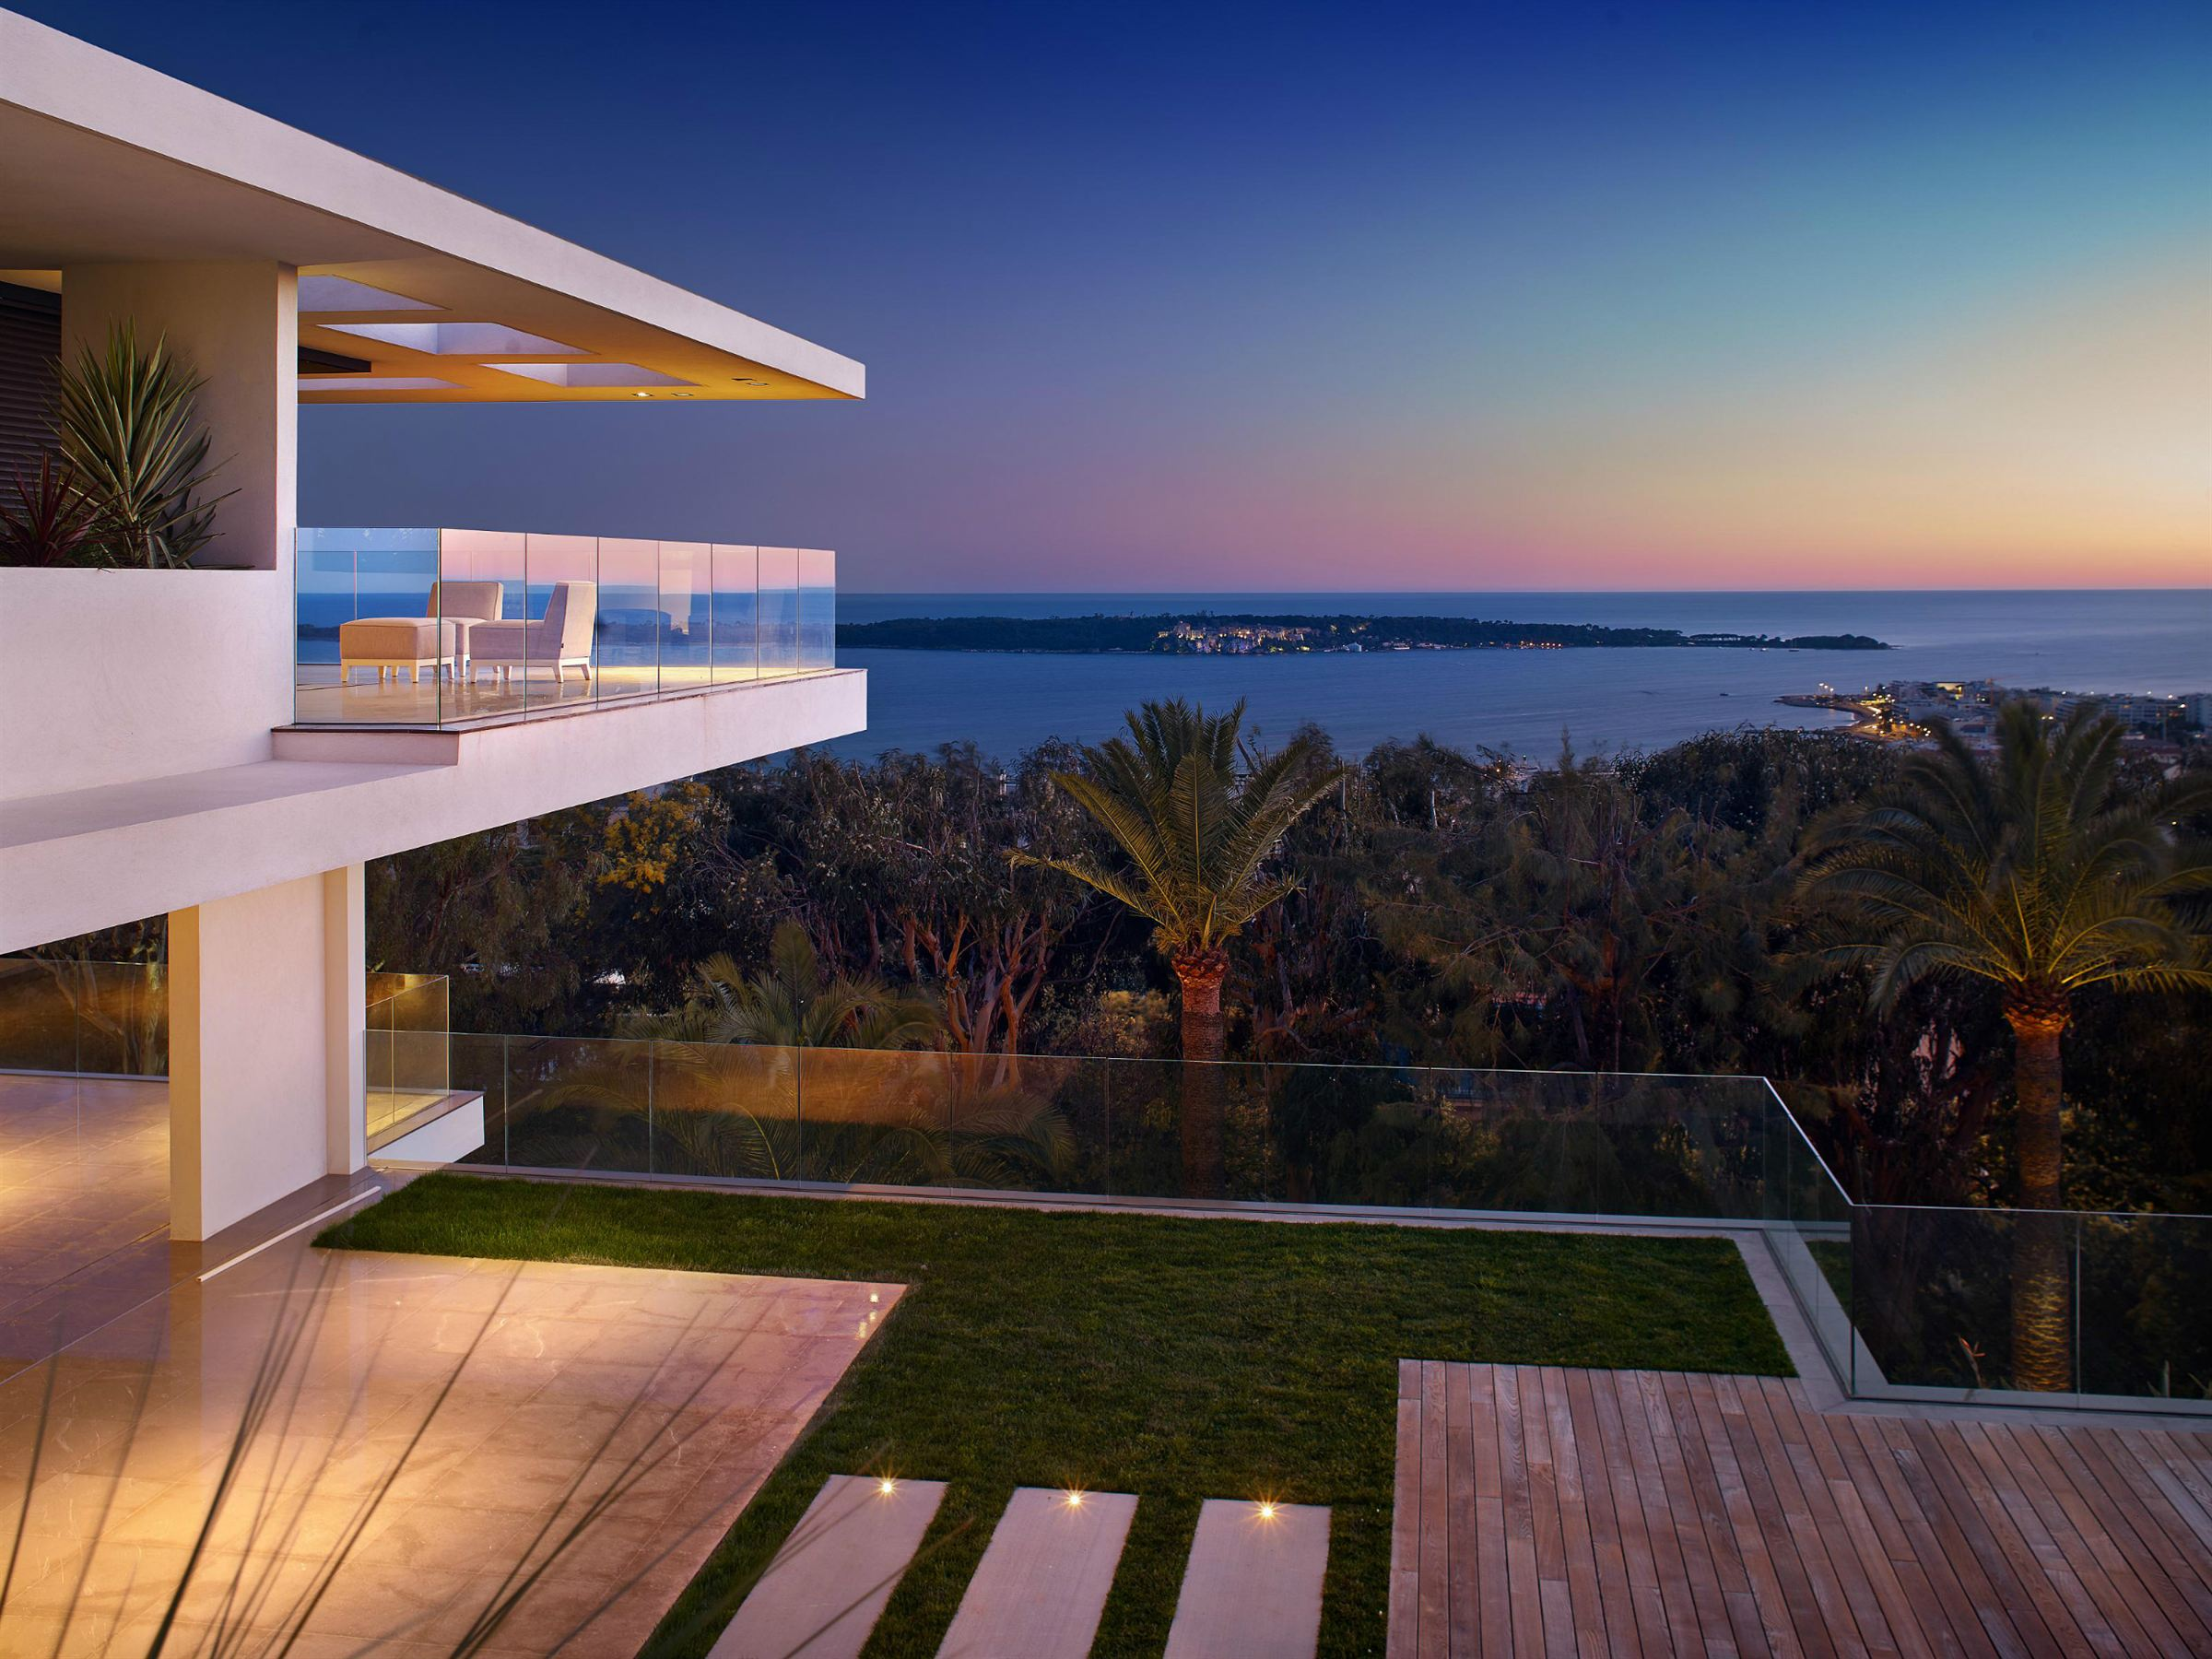 Nhà ở một gia đình vì Bán tại Luxury contemporay property for sale in Cannes Californie - panoramic sea views Cannes, Provence-Alpes-Cote D'Azur 06400 Pháp